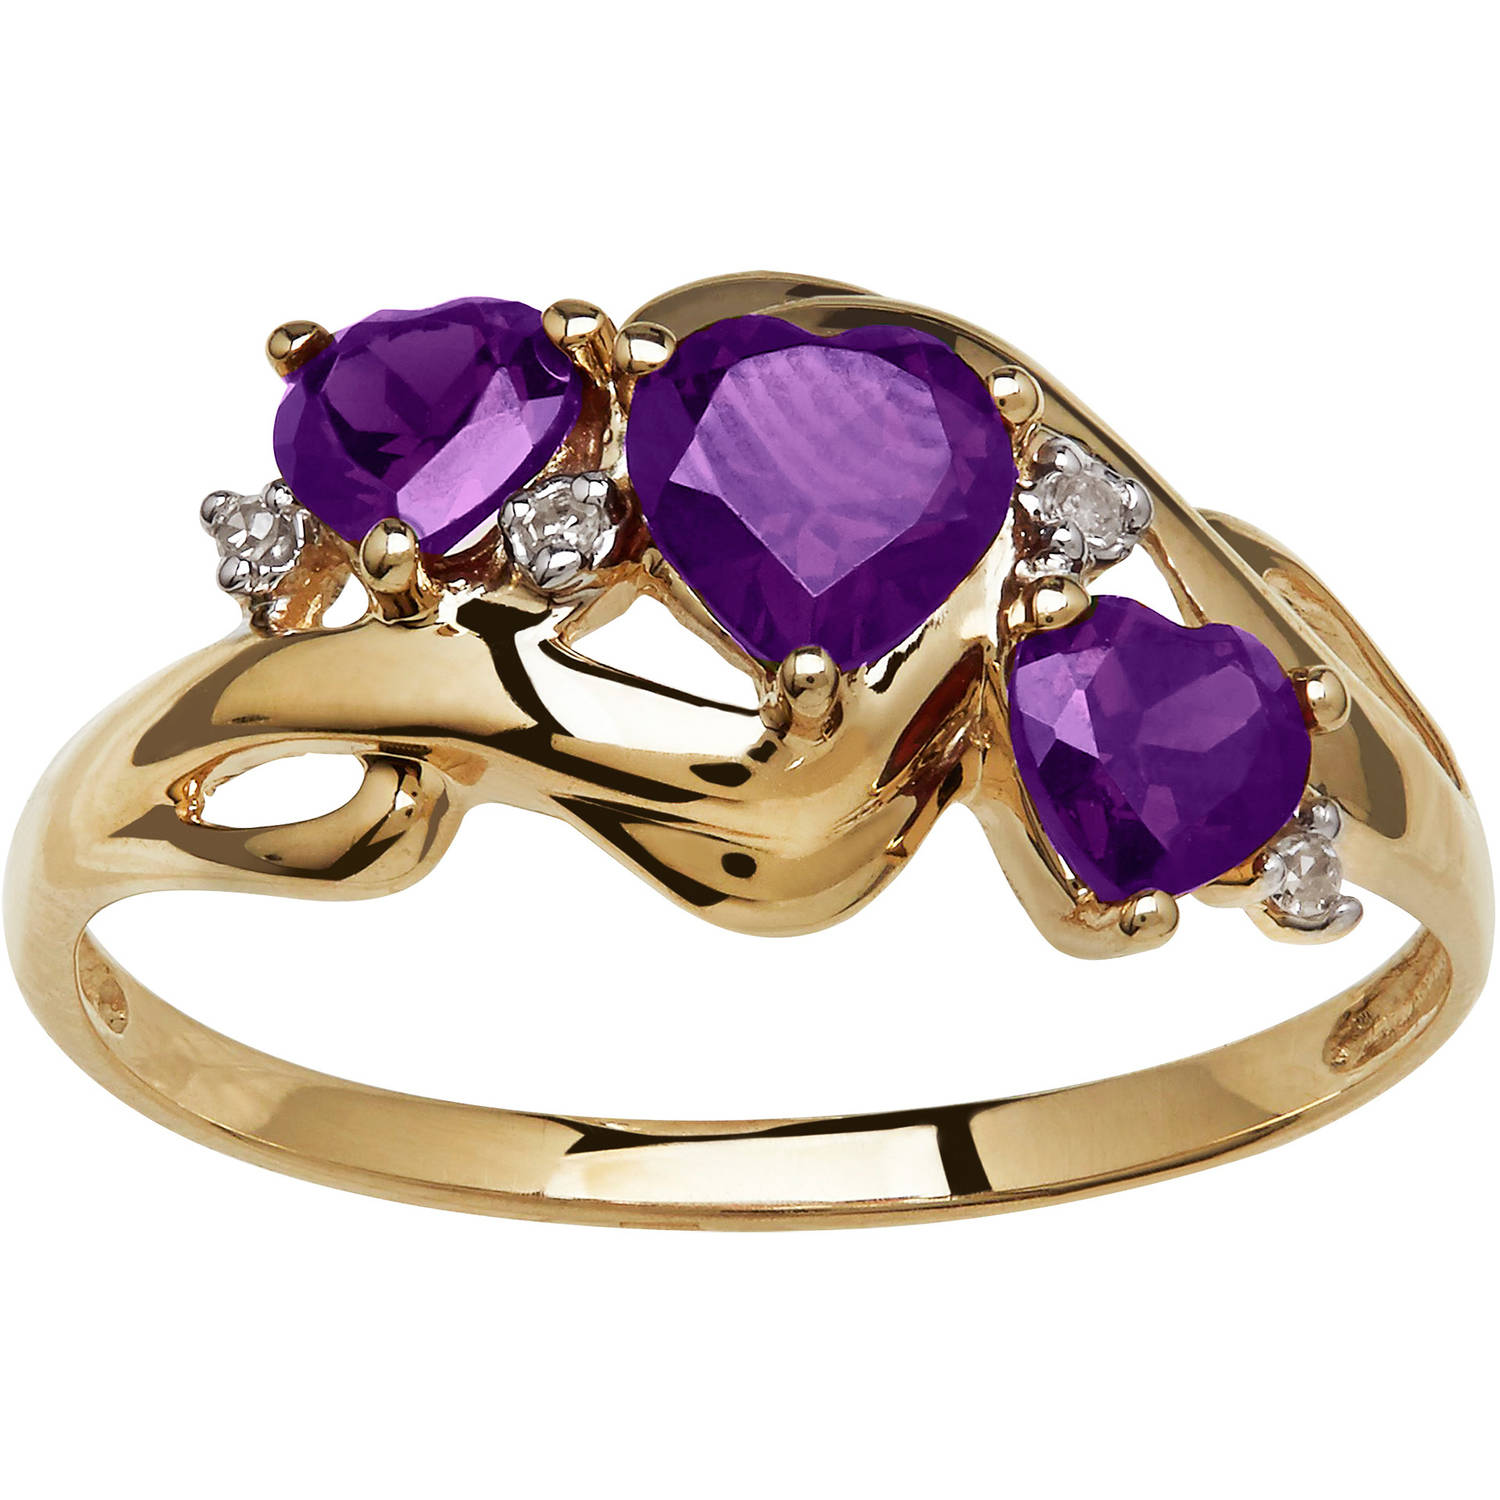 Simply Gold Gemstone Threestone Heart-Shaped Amethyst with Diamond Accent 10kt Yellow Gold Ring, Size 7